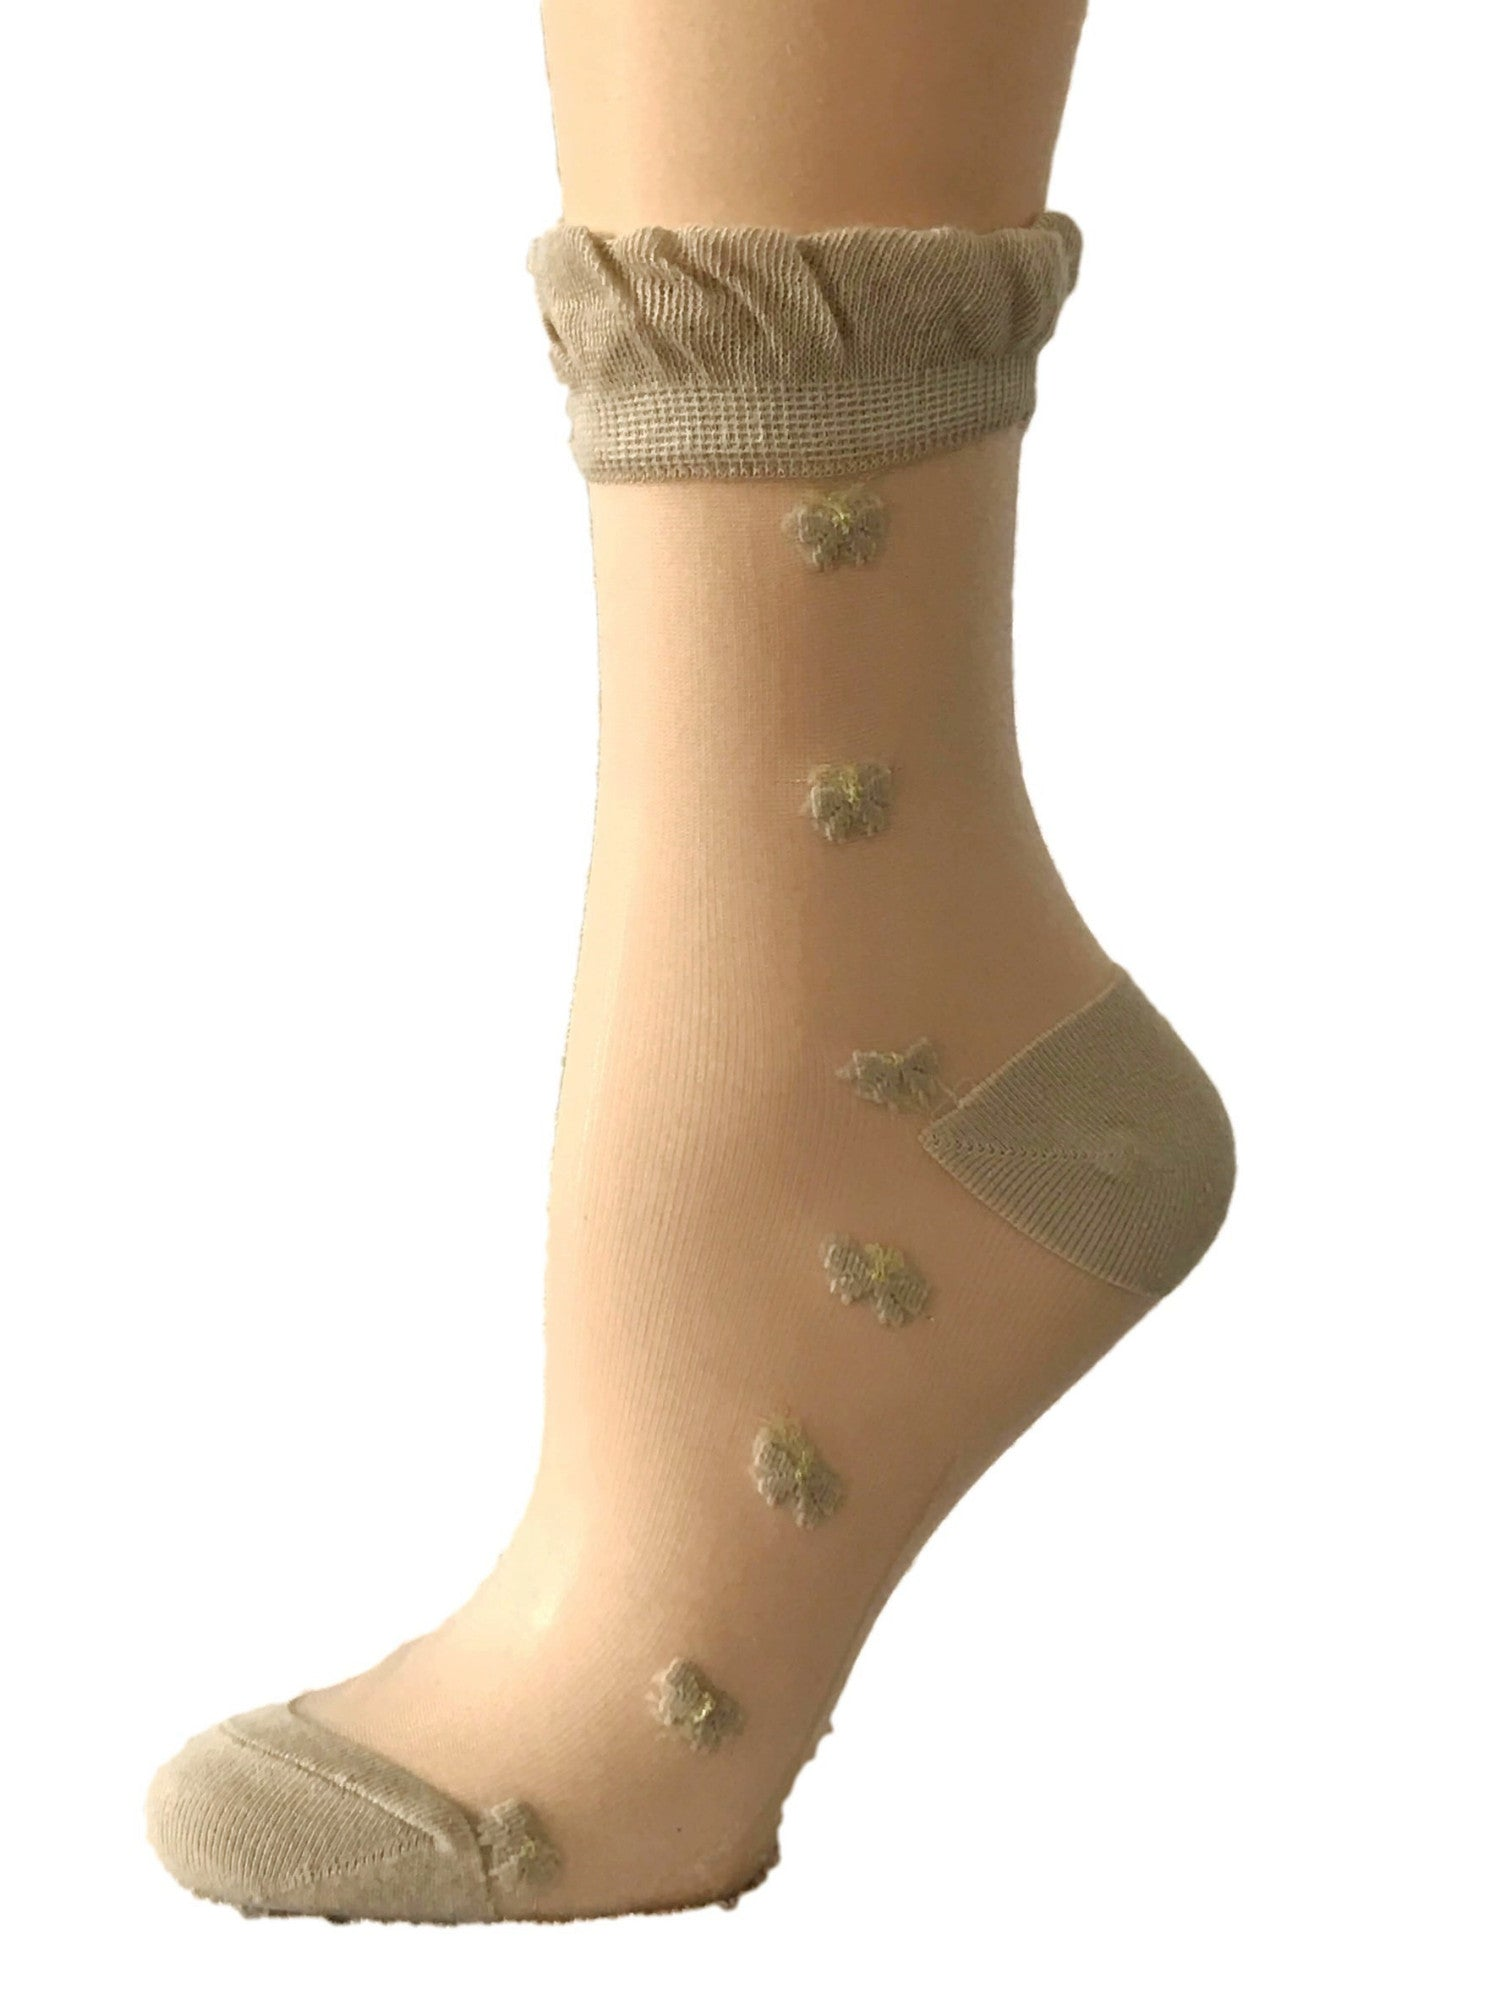 Pretty Skin Flowers Sheer Socks - Global Trendz Fashion®